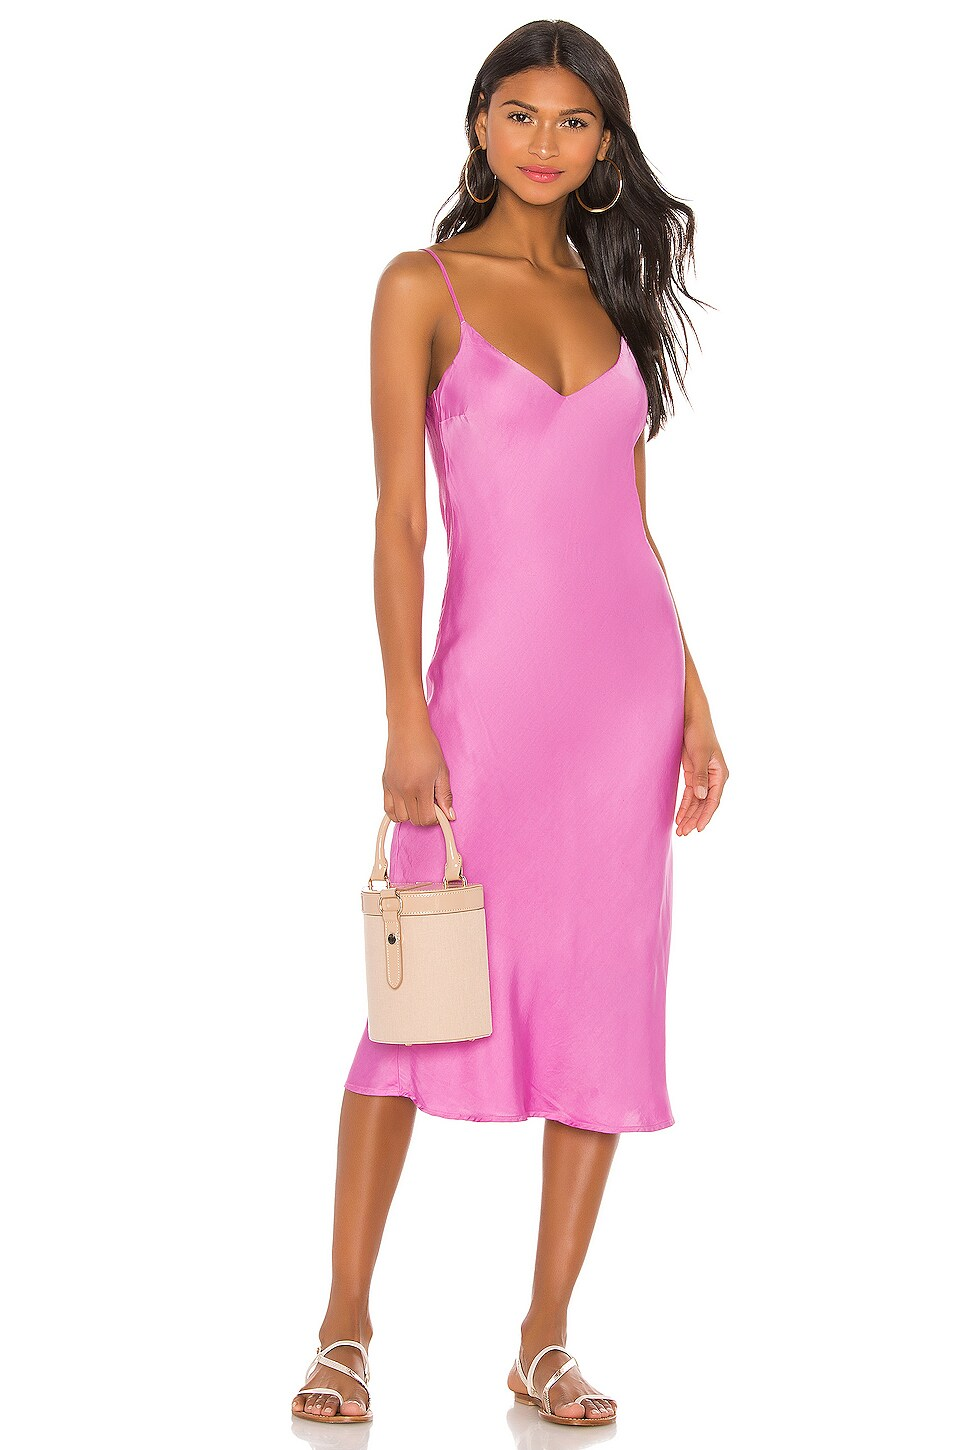 Cali Dreaming Vaea Slip Dress in Pink